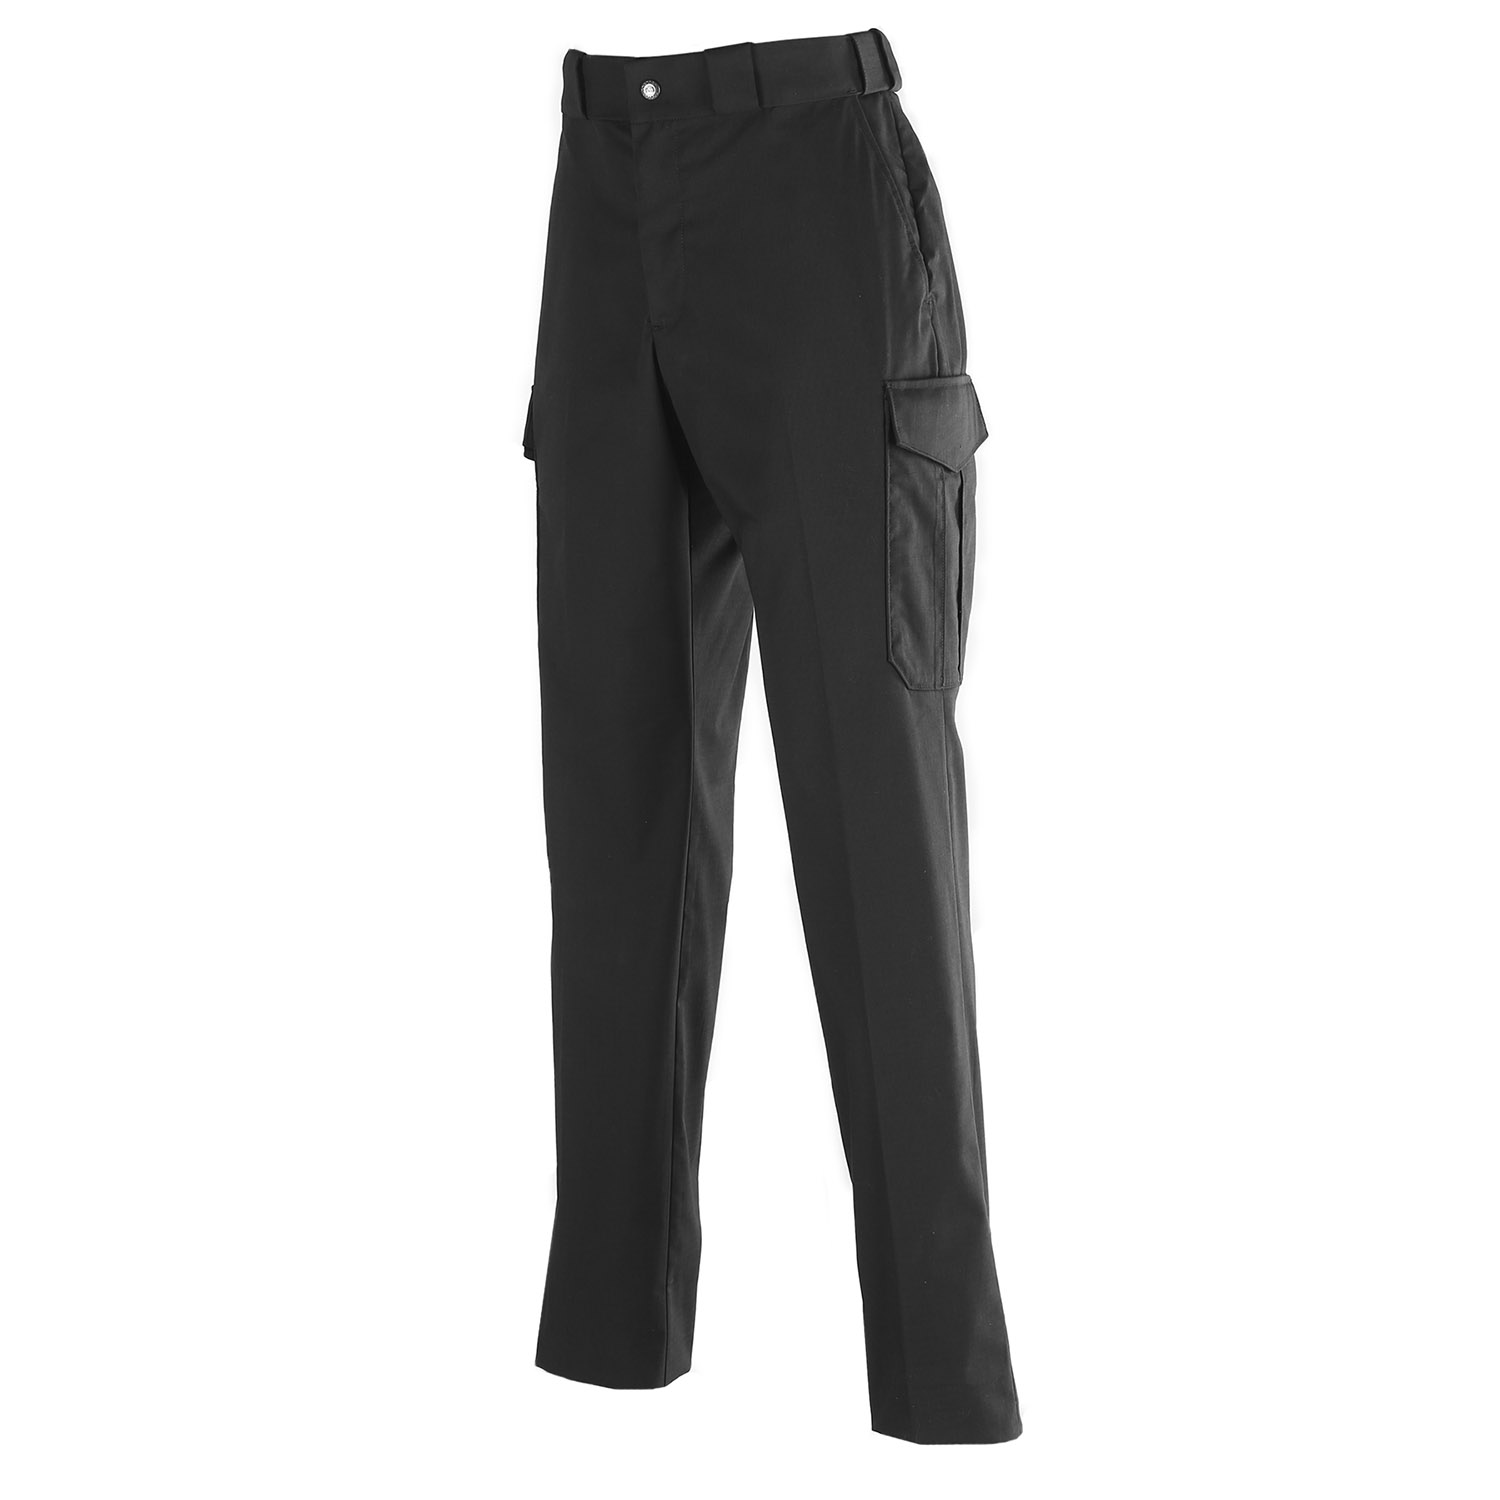 5.11 Tactical Men's Class B Stryke PDU Pants